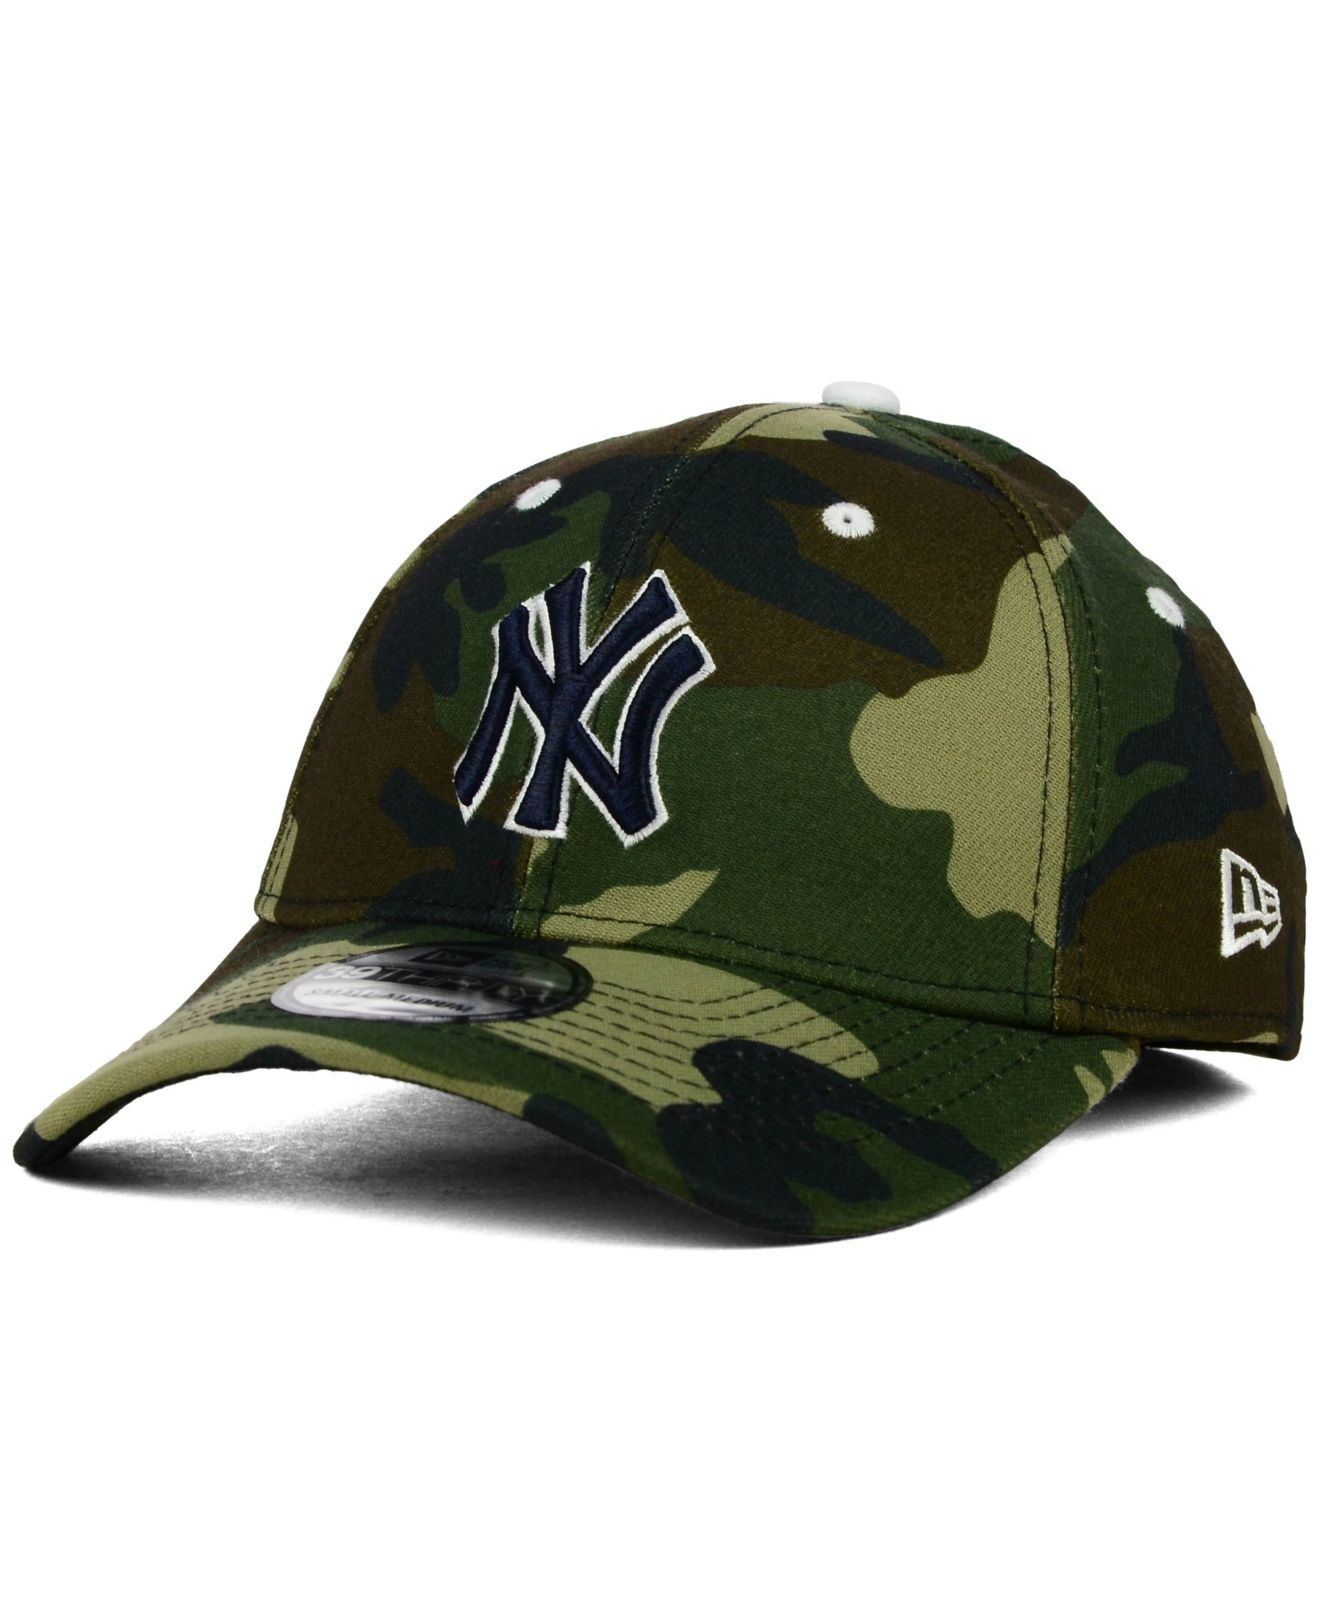 Lyst - KTZ New York Yankees Camo Classic 39thirty Cap in Green for Men b7572616e2d